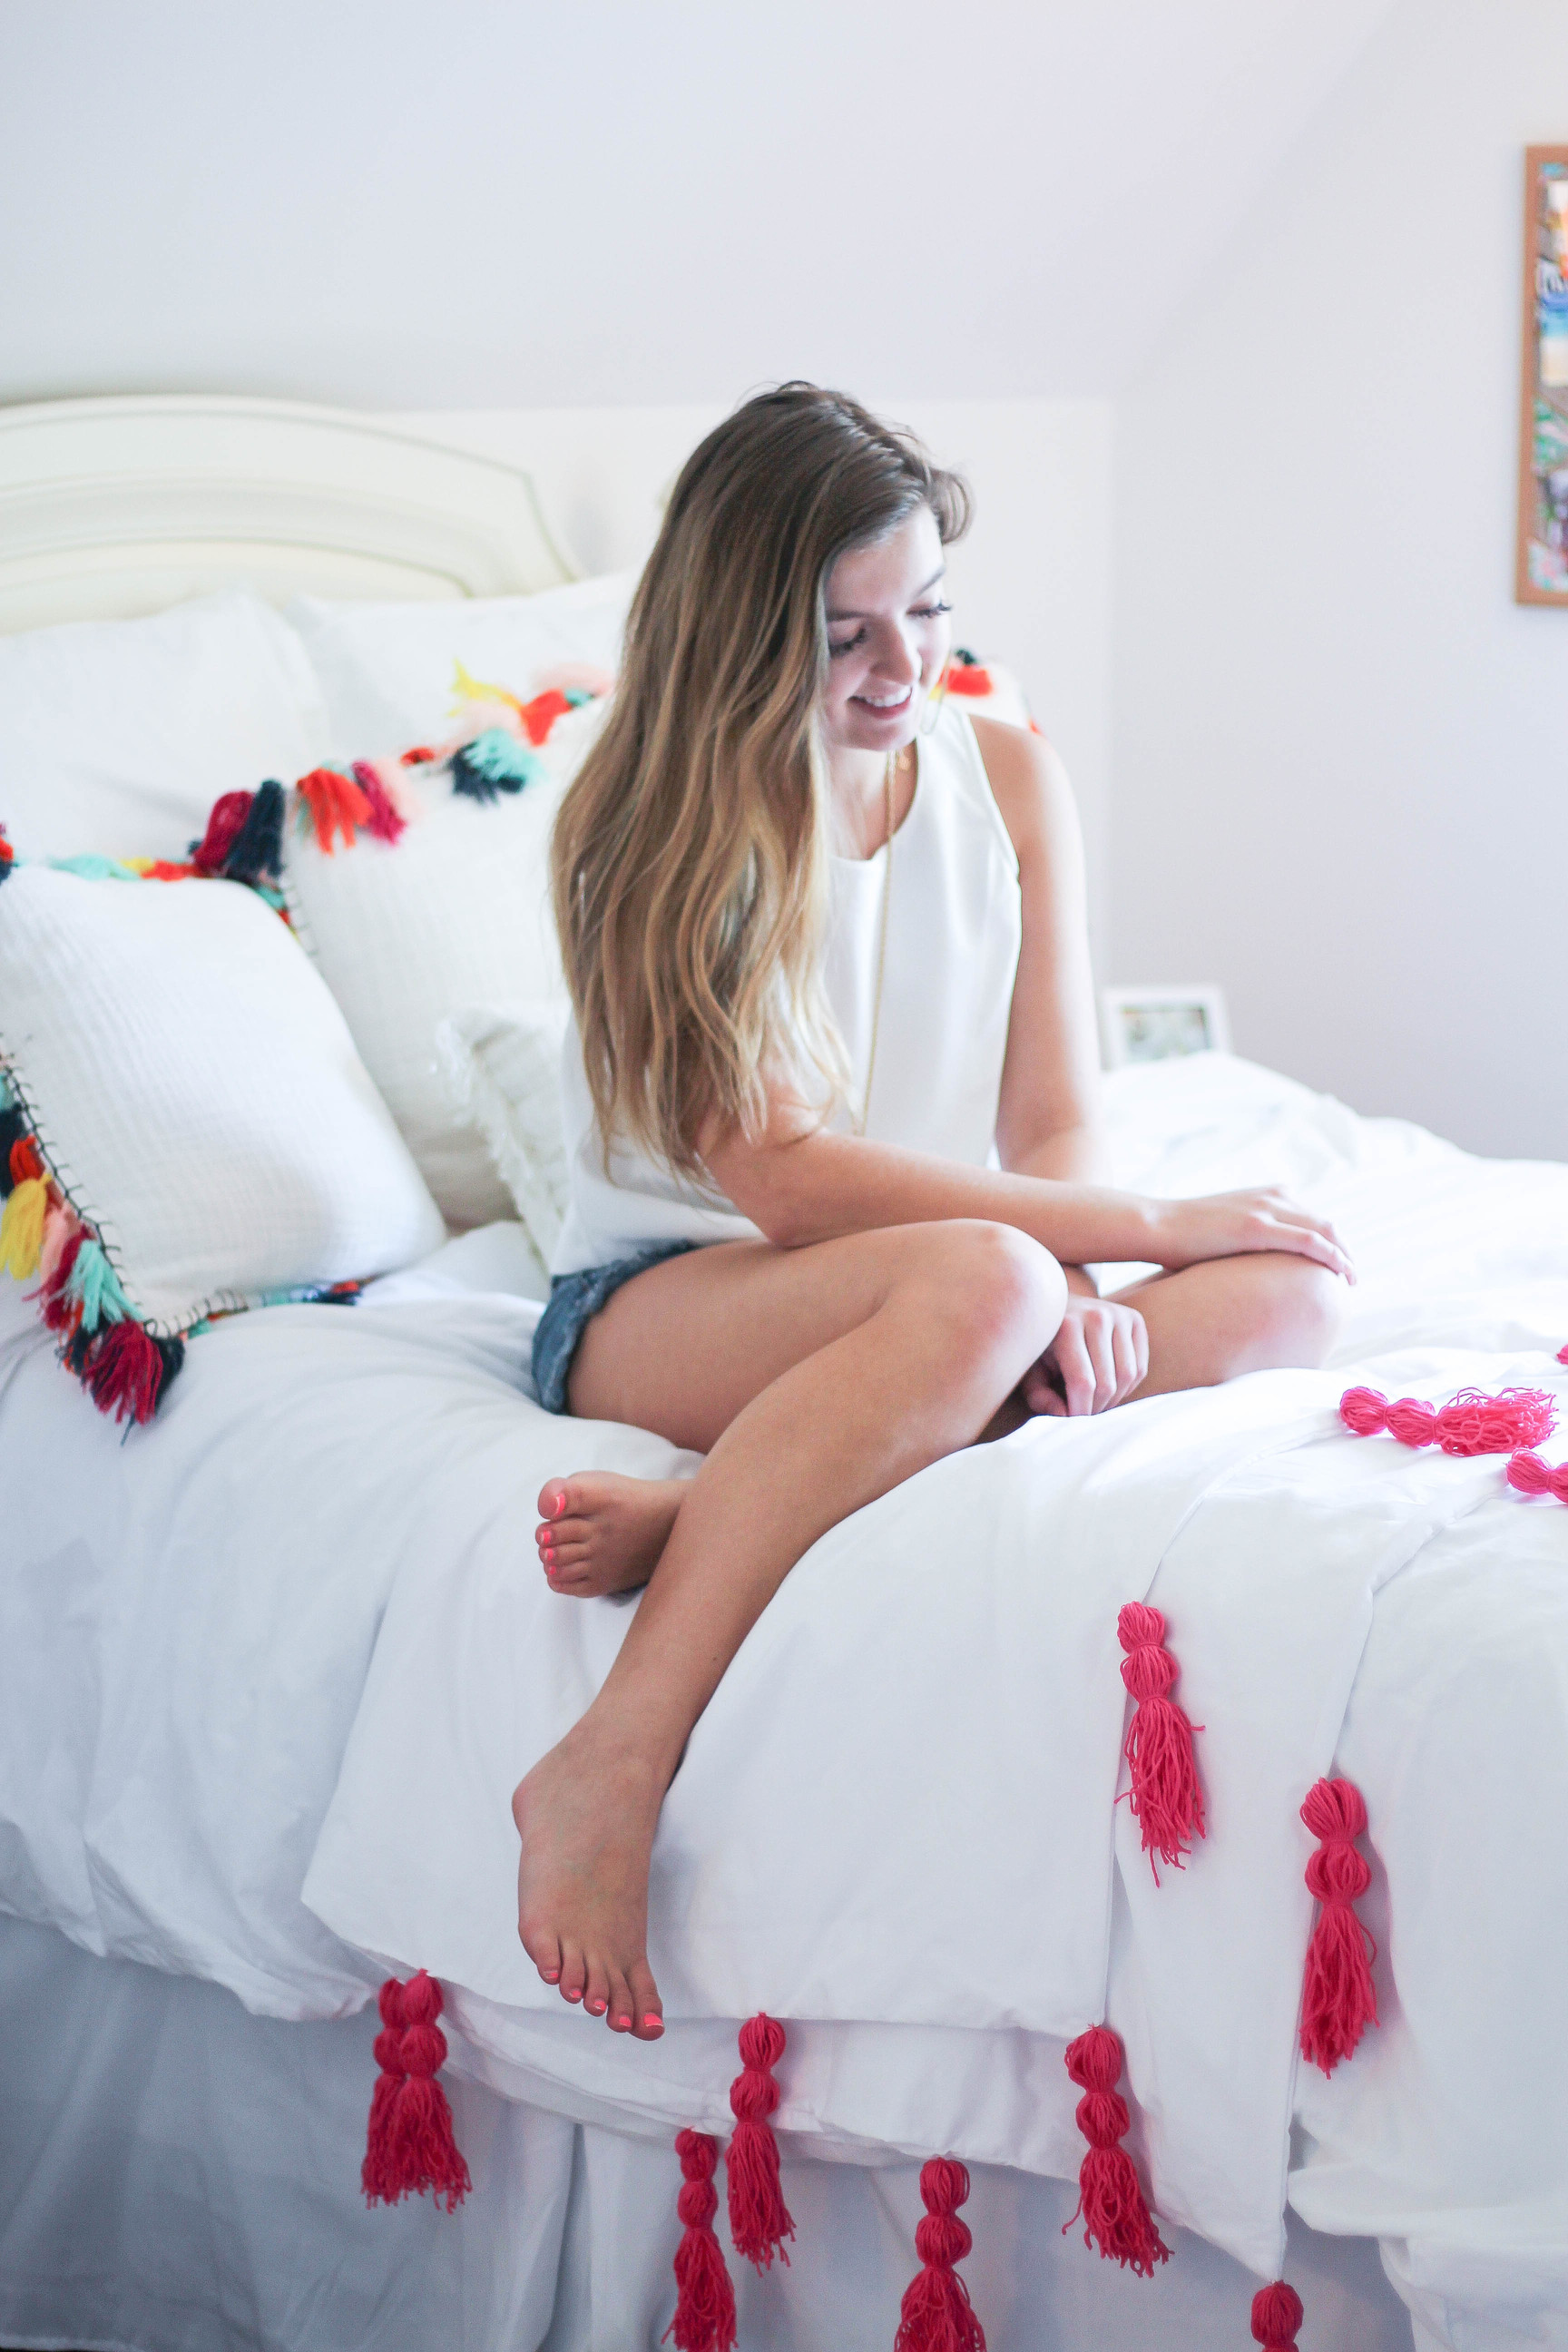 DIY Tassel bedding and crafts Tassel decor for dorm room by lauren lindmark on daily dose of charm